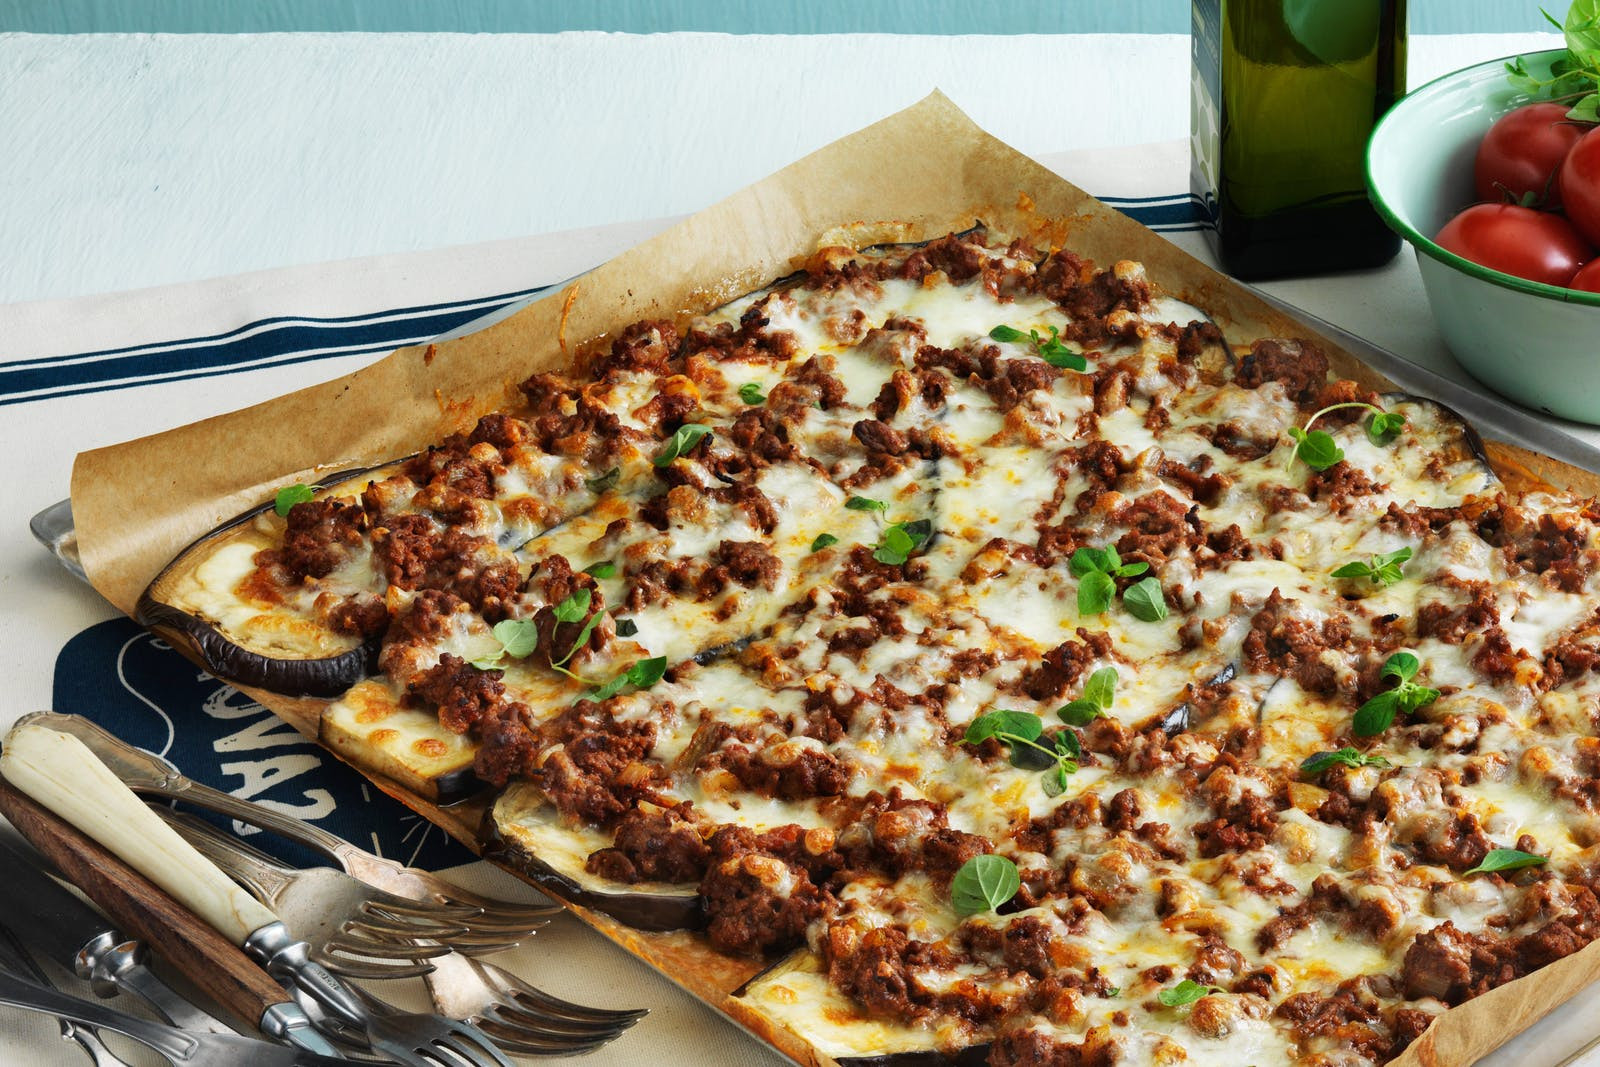 Low Carb Recipes For Dinner  Low Carb Eggplant Pizza With Beef and Cheese Diet Doctor